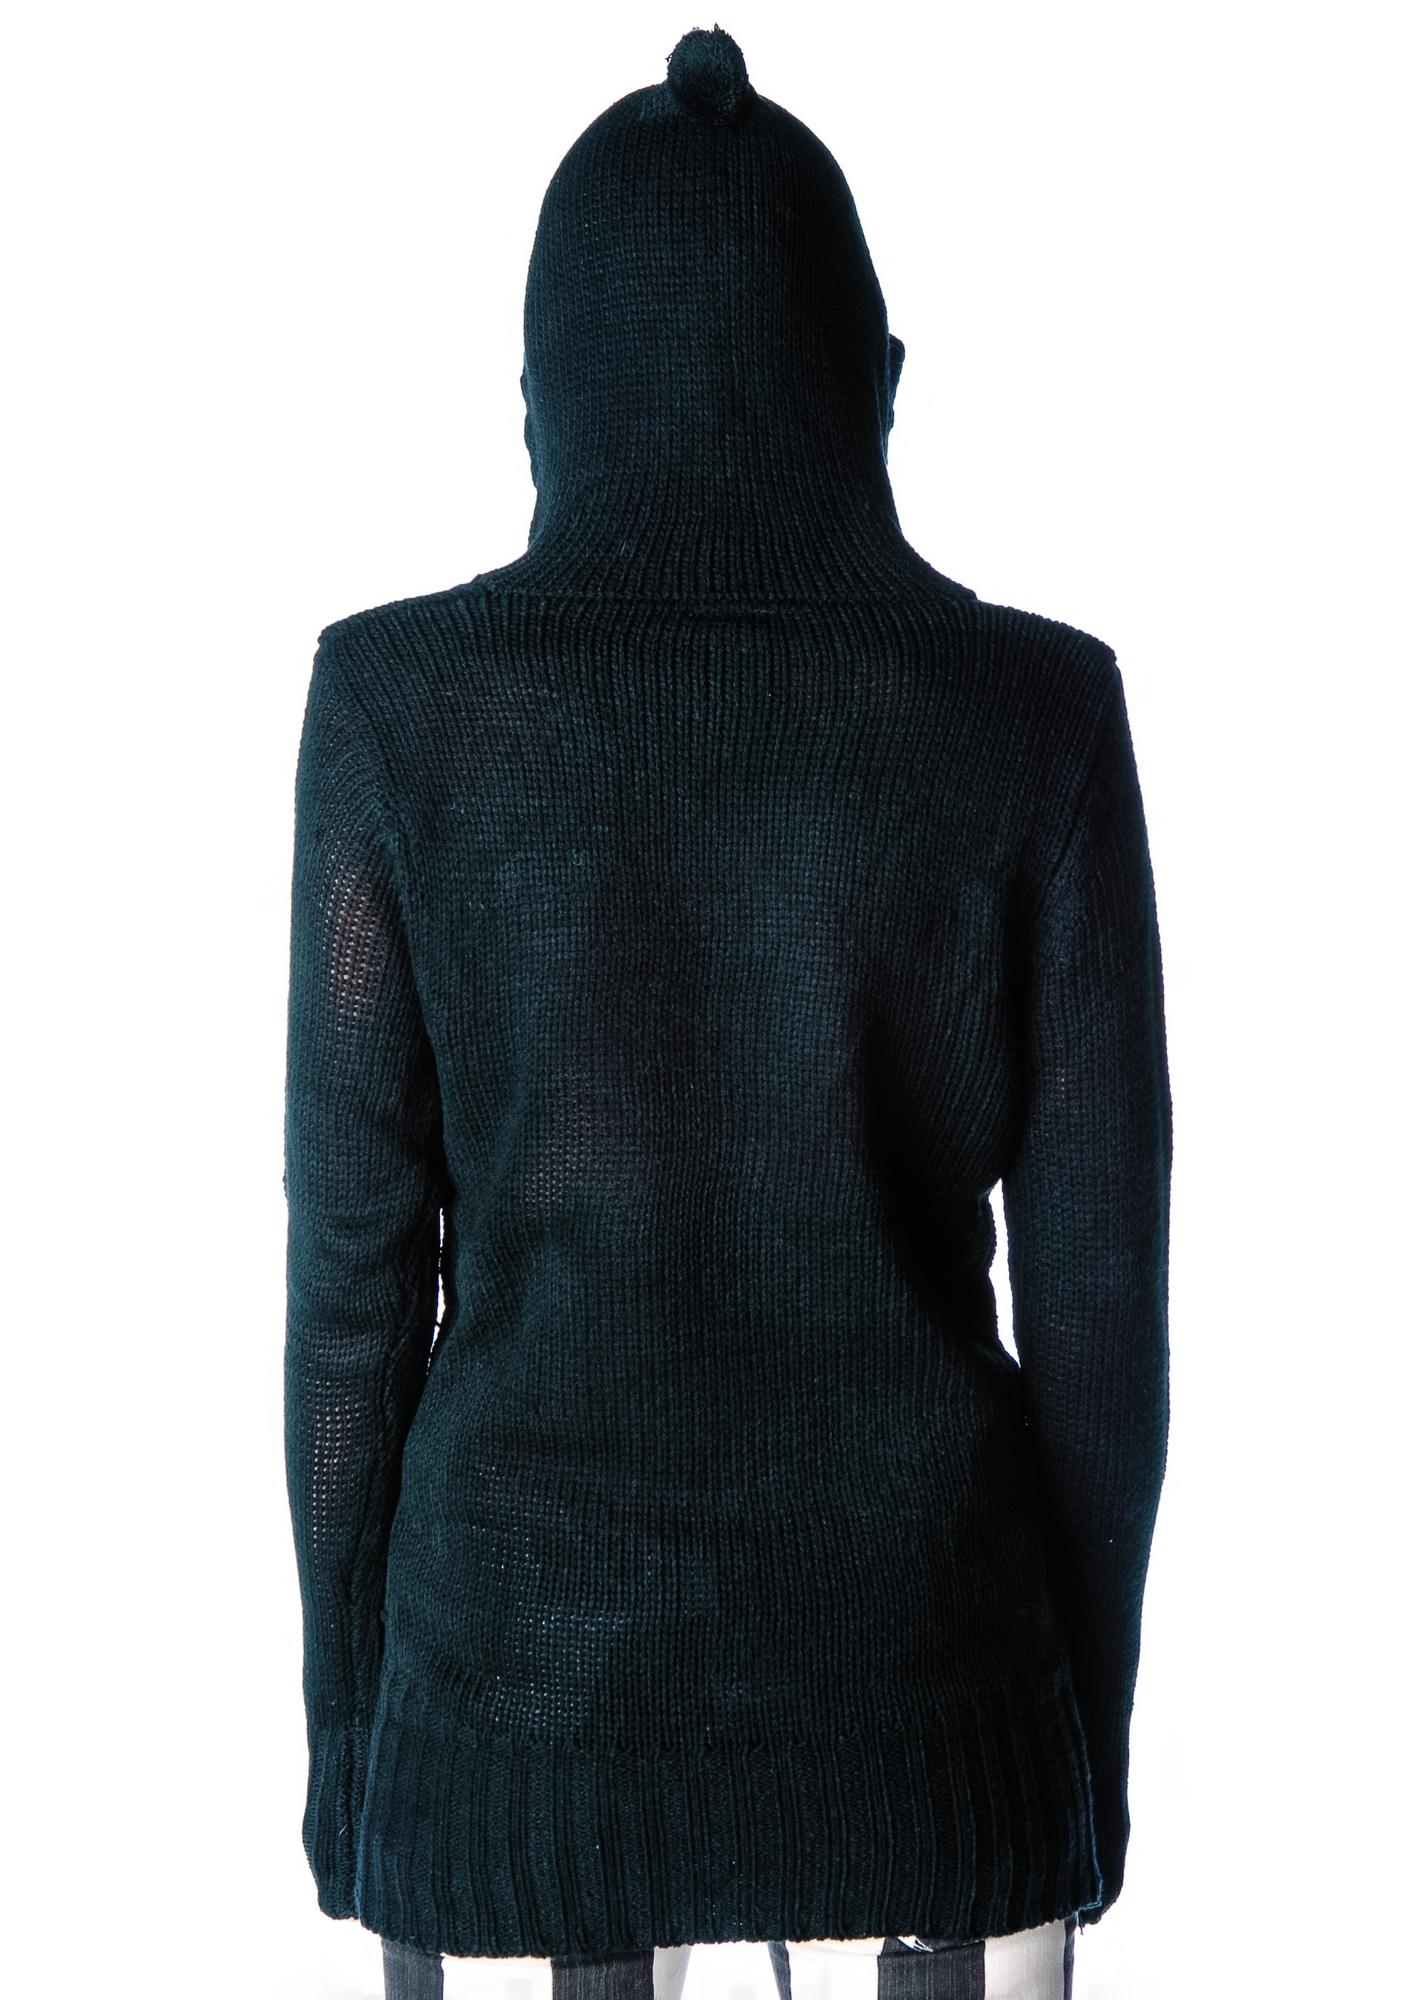 Riley Hooded Knit Sweater